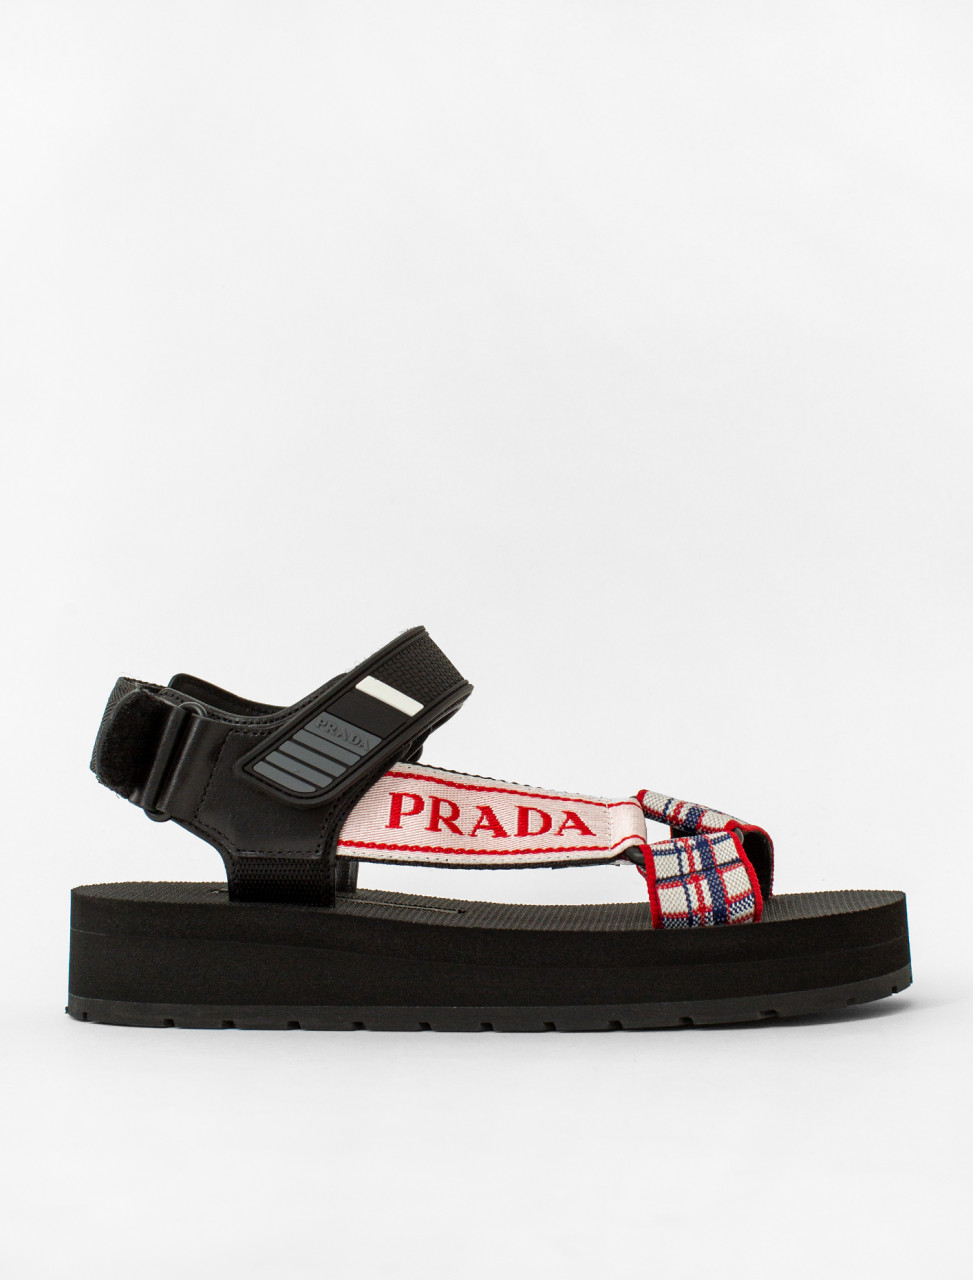 Sport-Knit Sandal in Black and Red